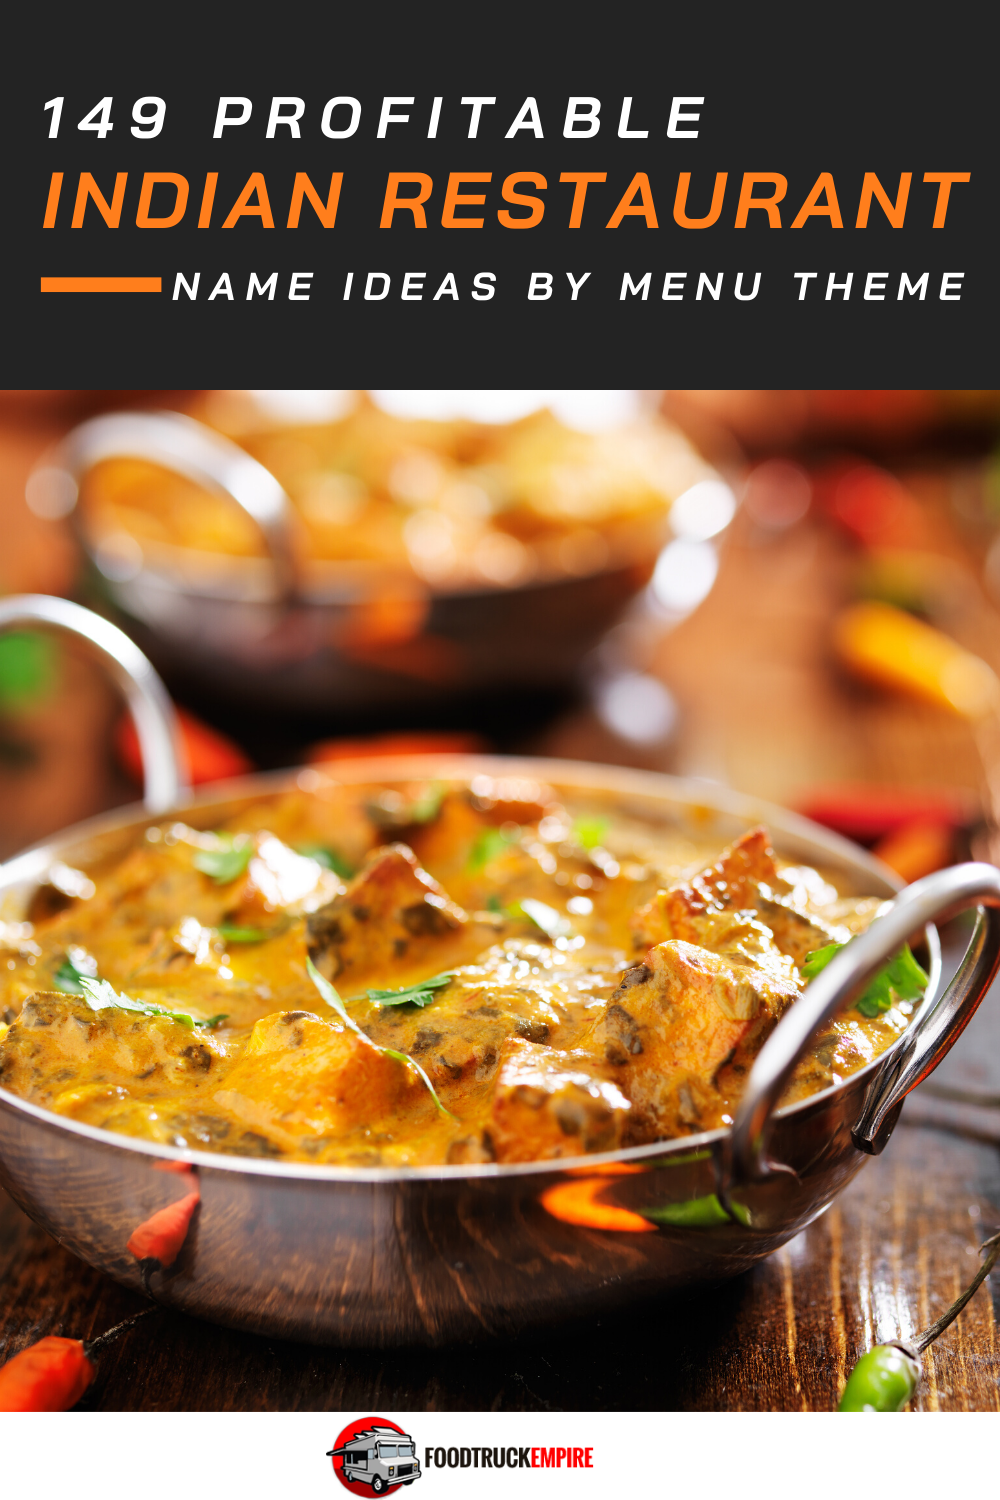 149 Profitable Indian Restaurant Name Ideas By Menu Theme